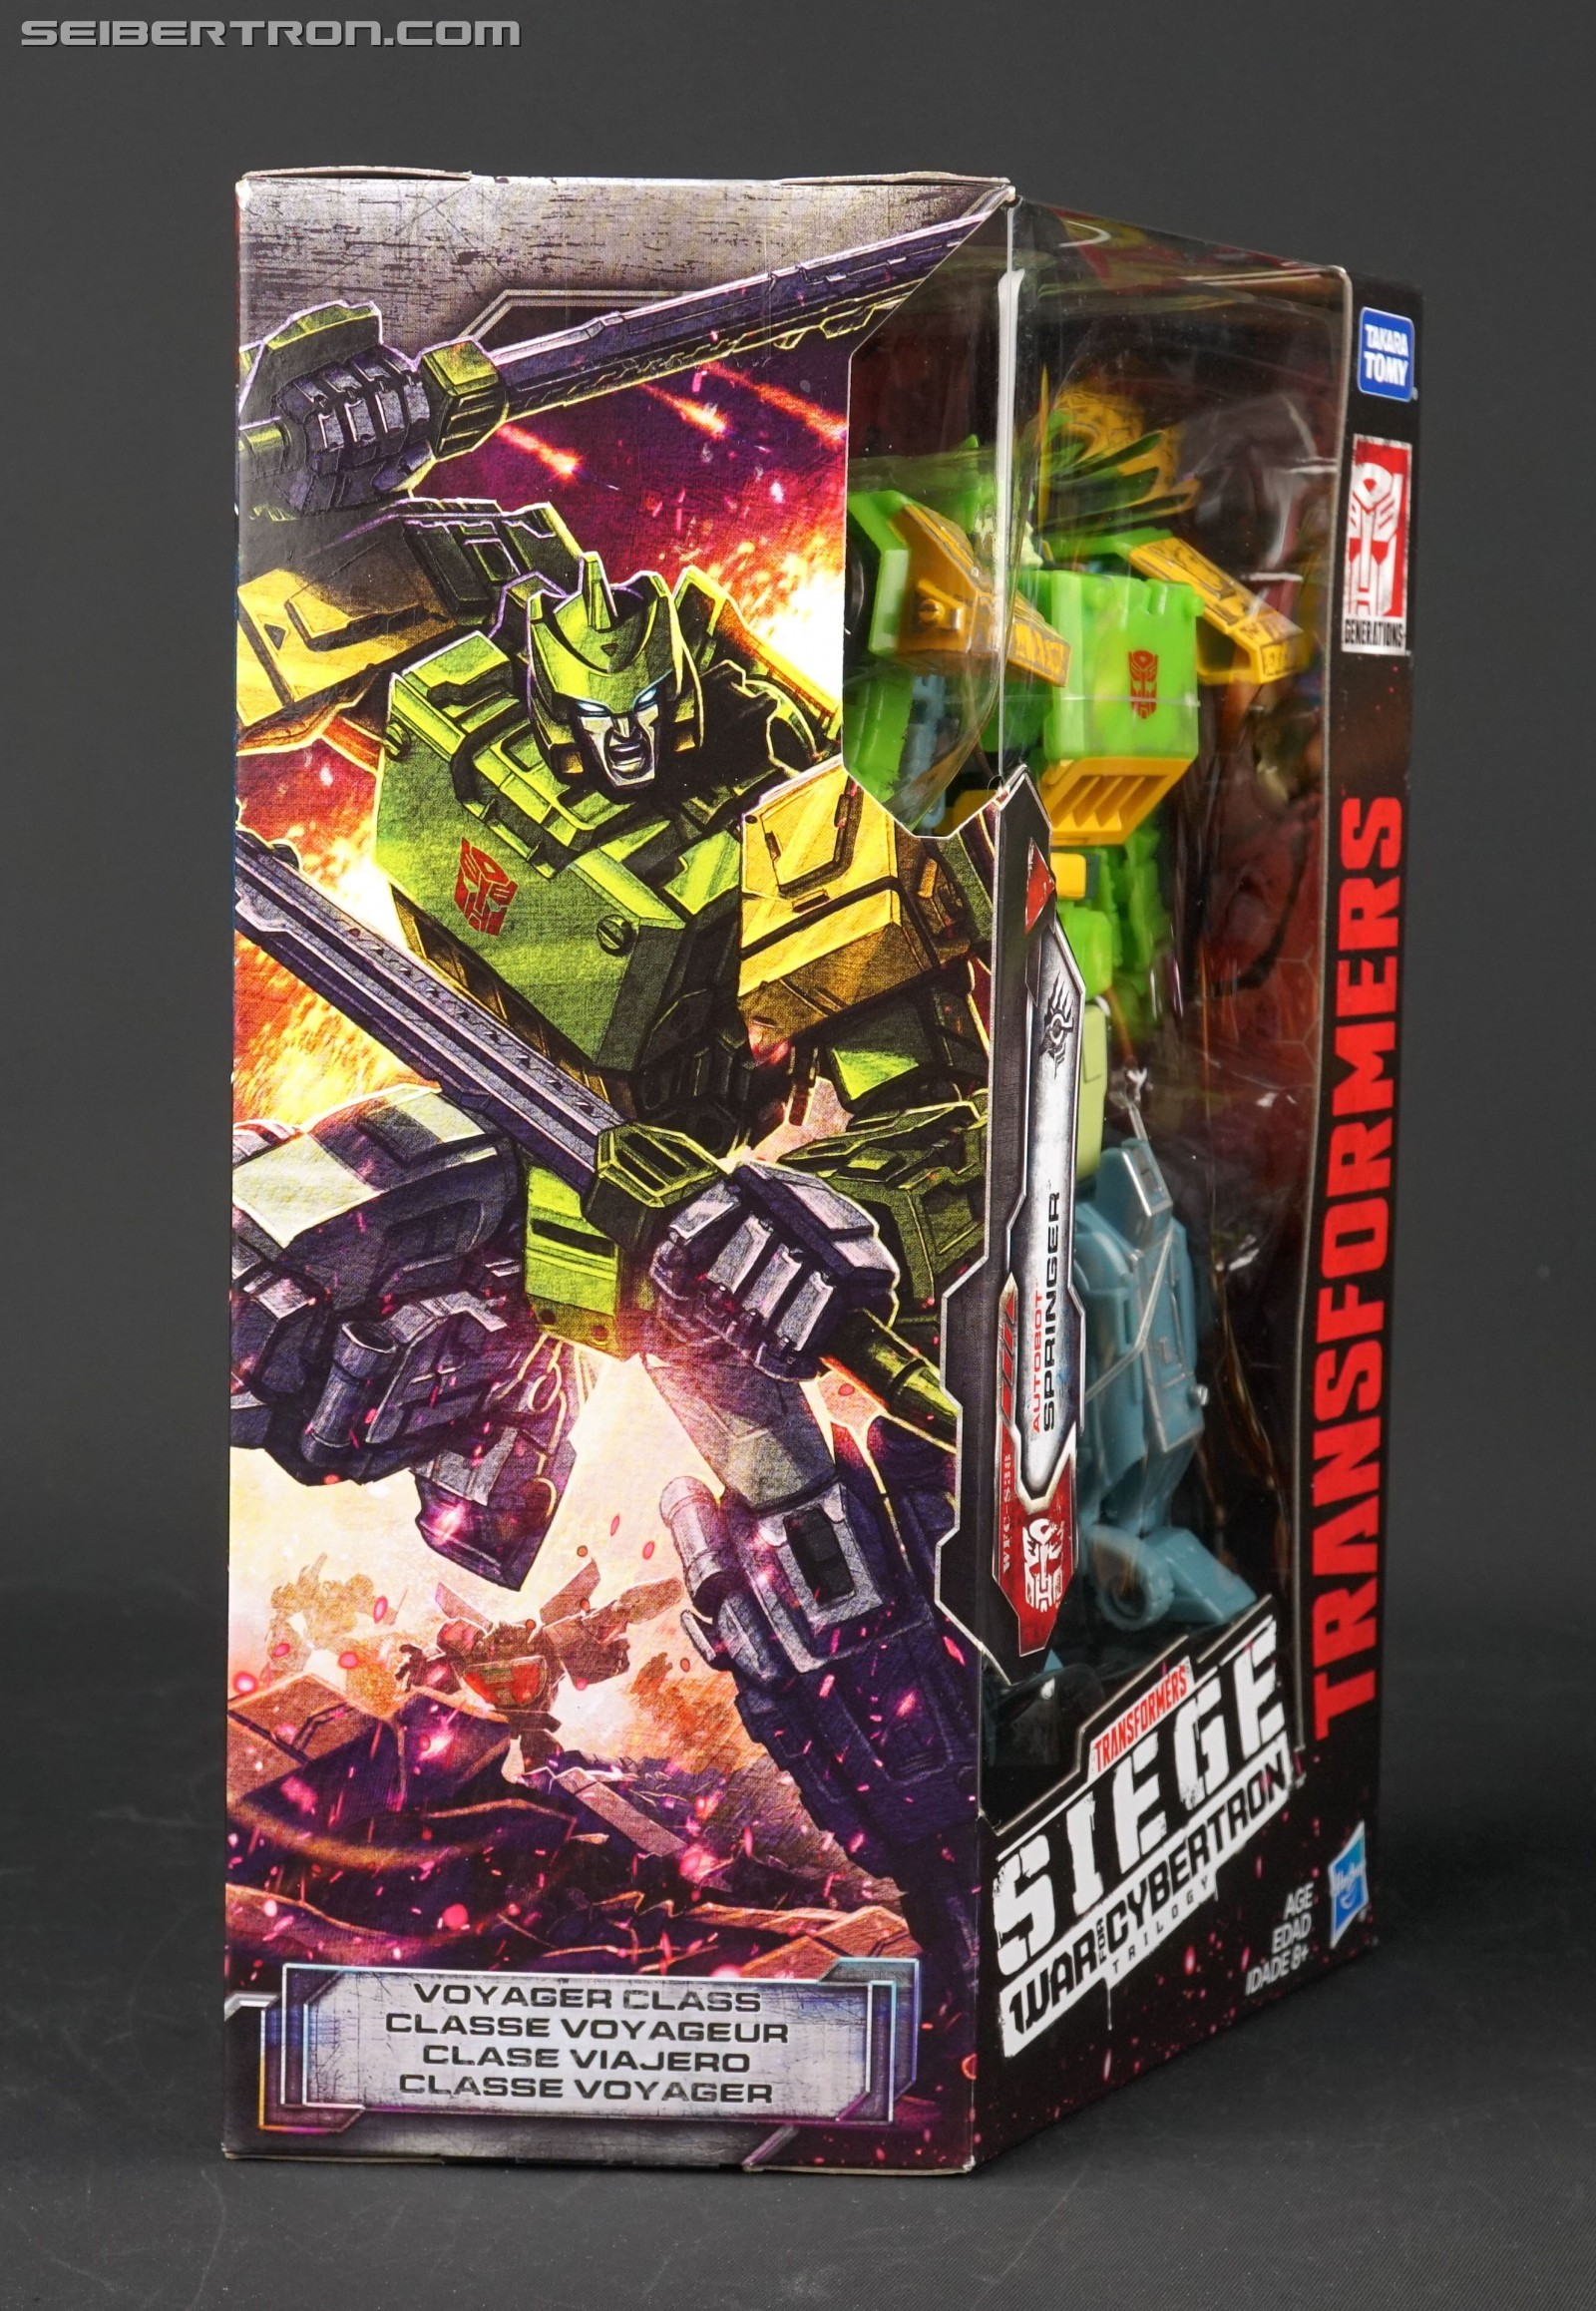 Transformers News: Transformers Wheeljack Teased on War for Cybertron Siege Springer Box